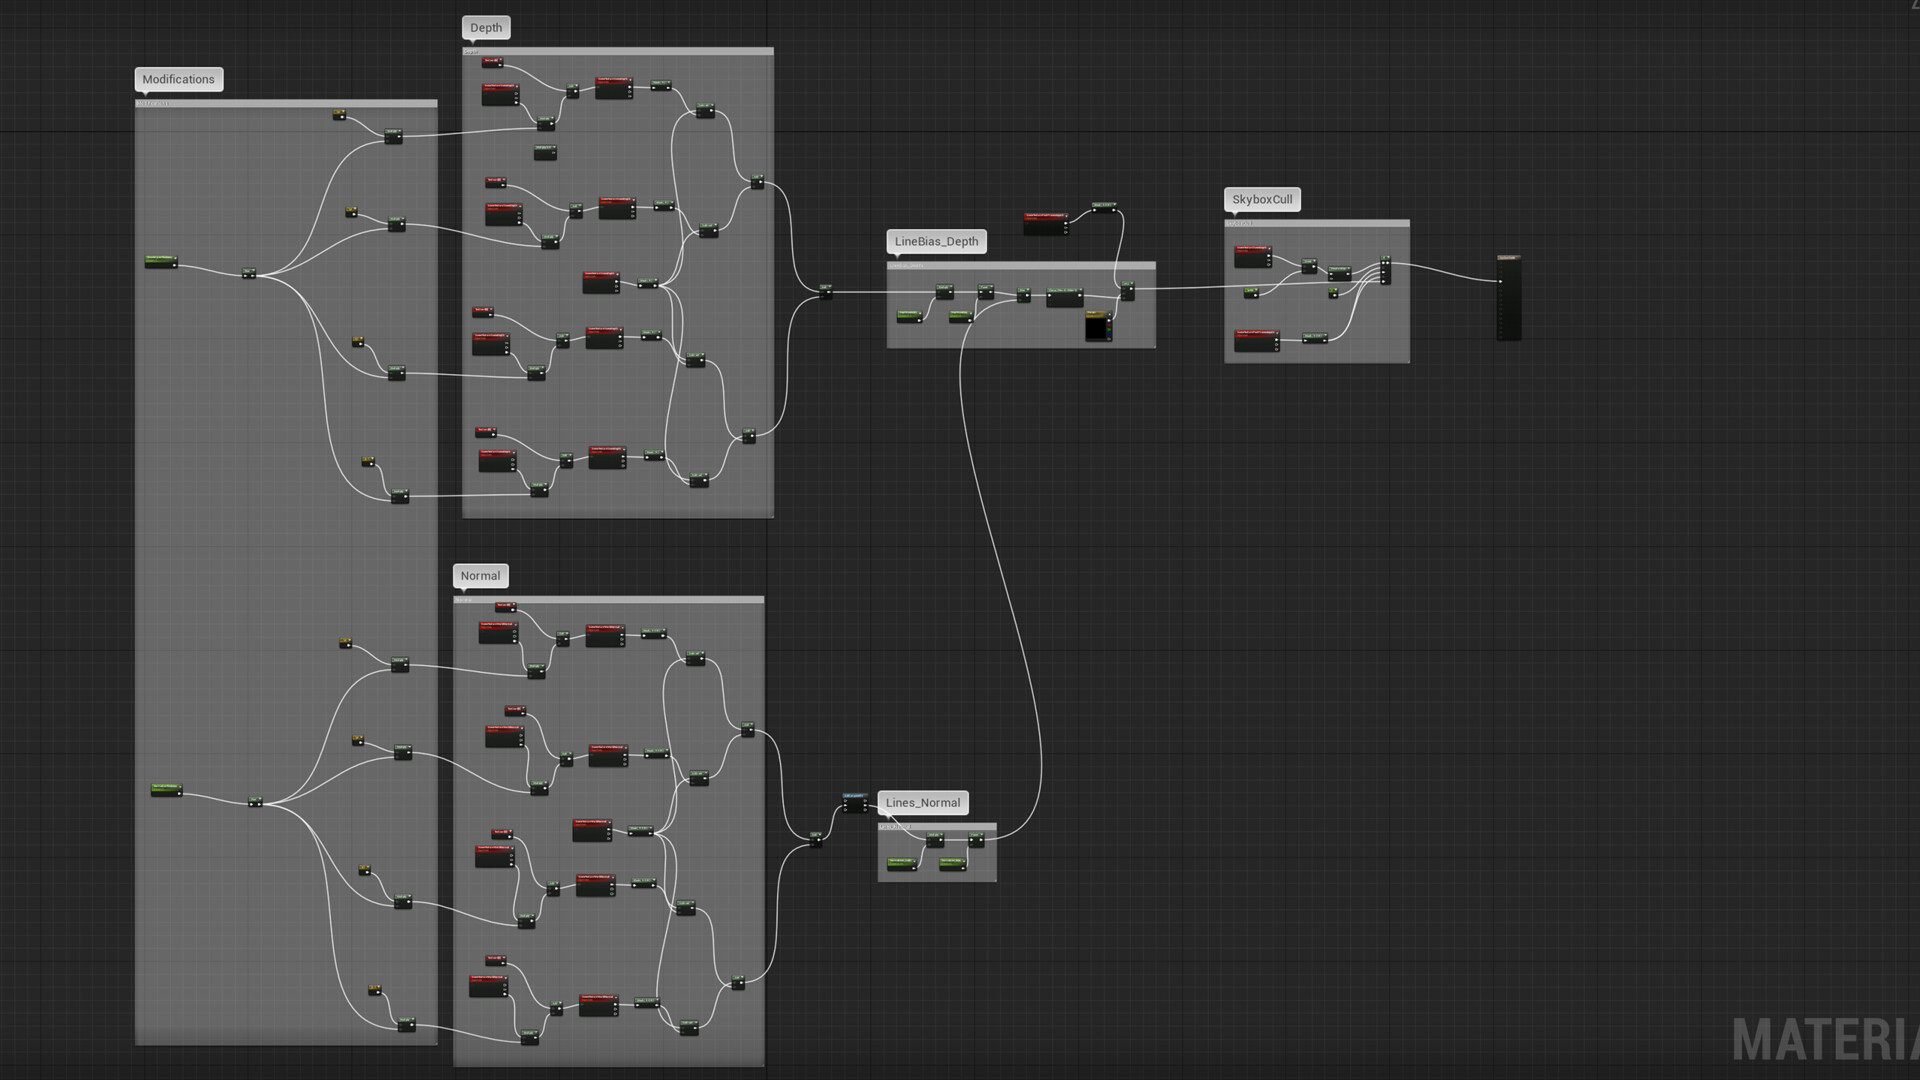 Outline shader setup, for more detail, consult Epic's excellent walk-through of their setup : https://www.youtube.com/watch?v=cQw1CL0xYBE&t=3447s